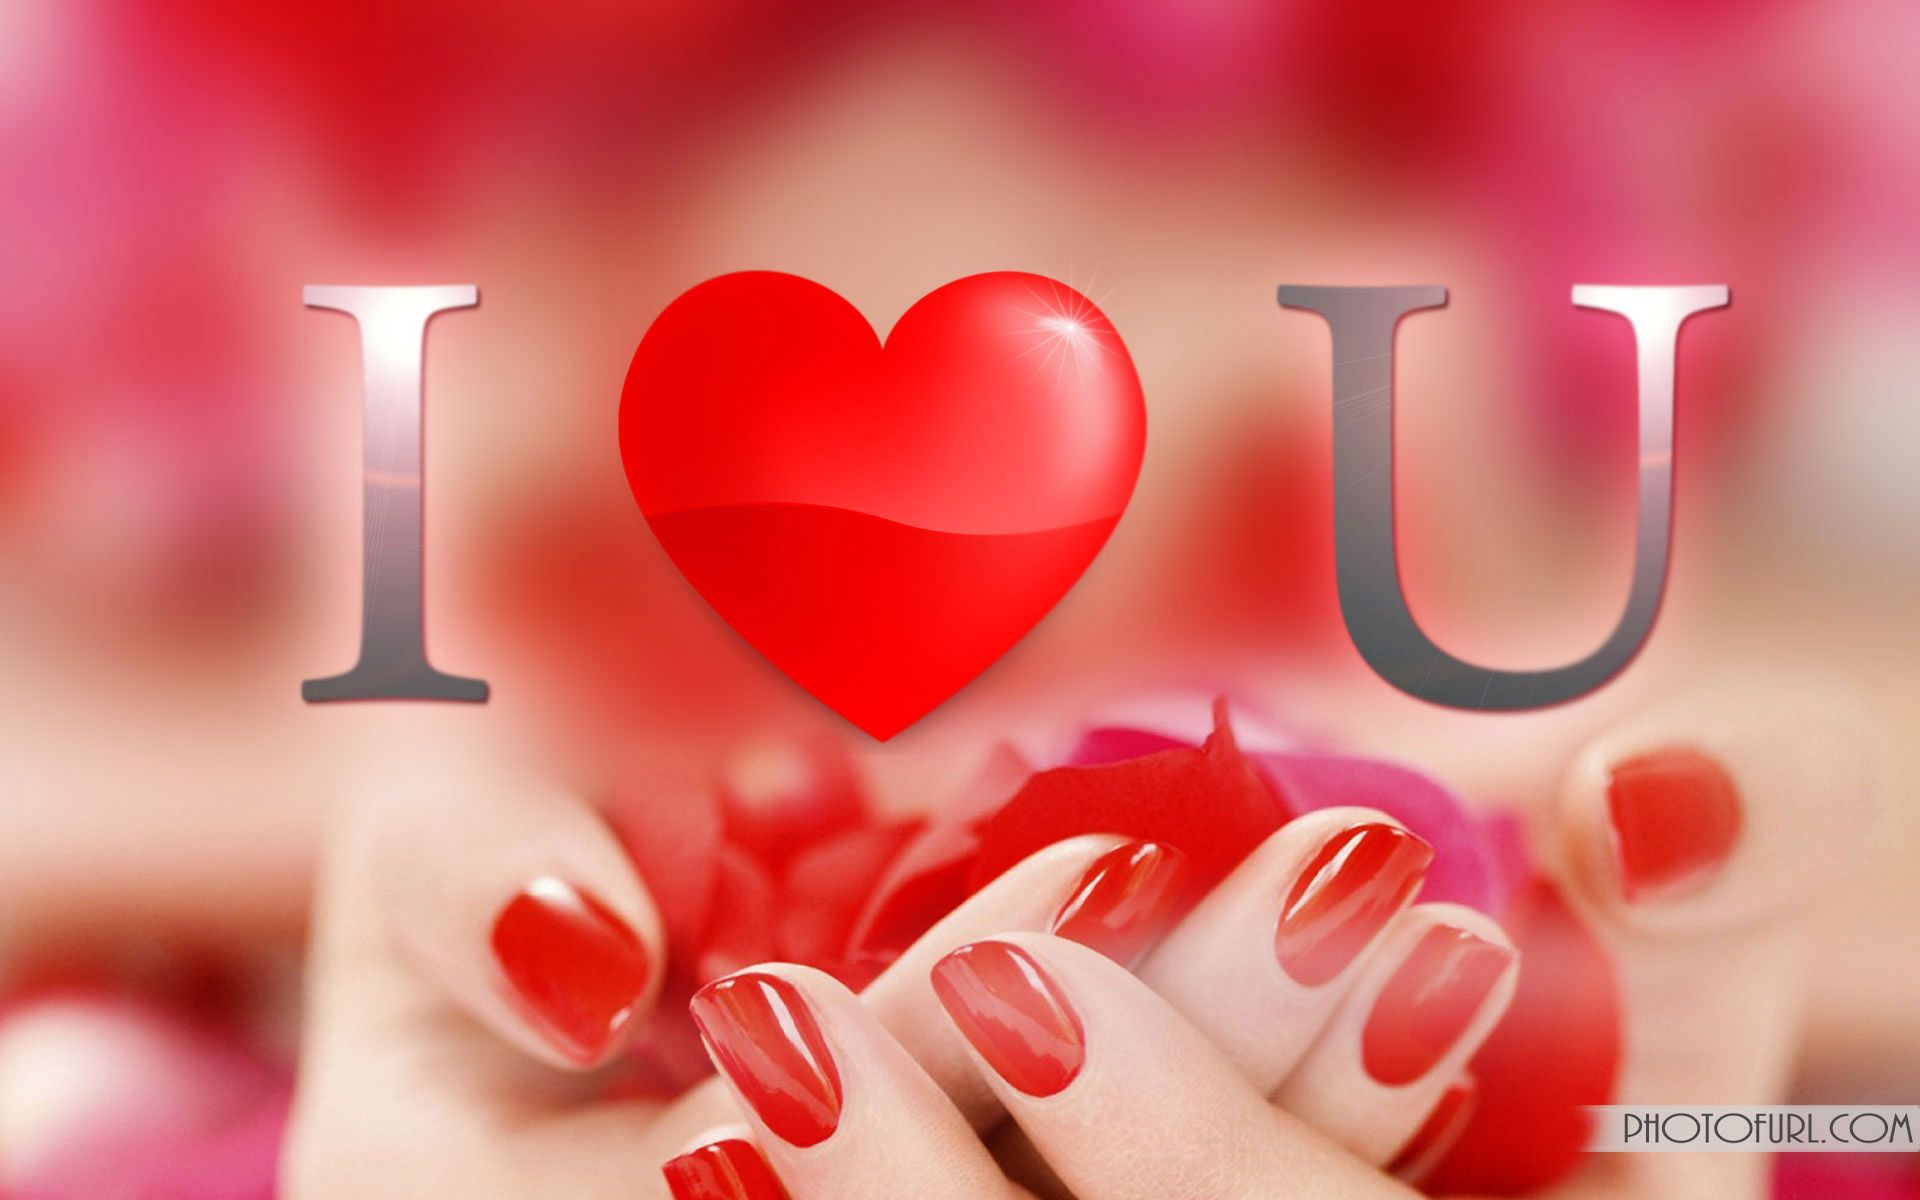 Cute Red Hearts Wallpapers Hart Wallpaper 60 Wallpapers Adorable Wallpapers